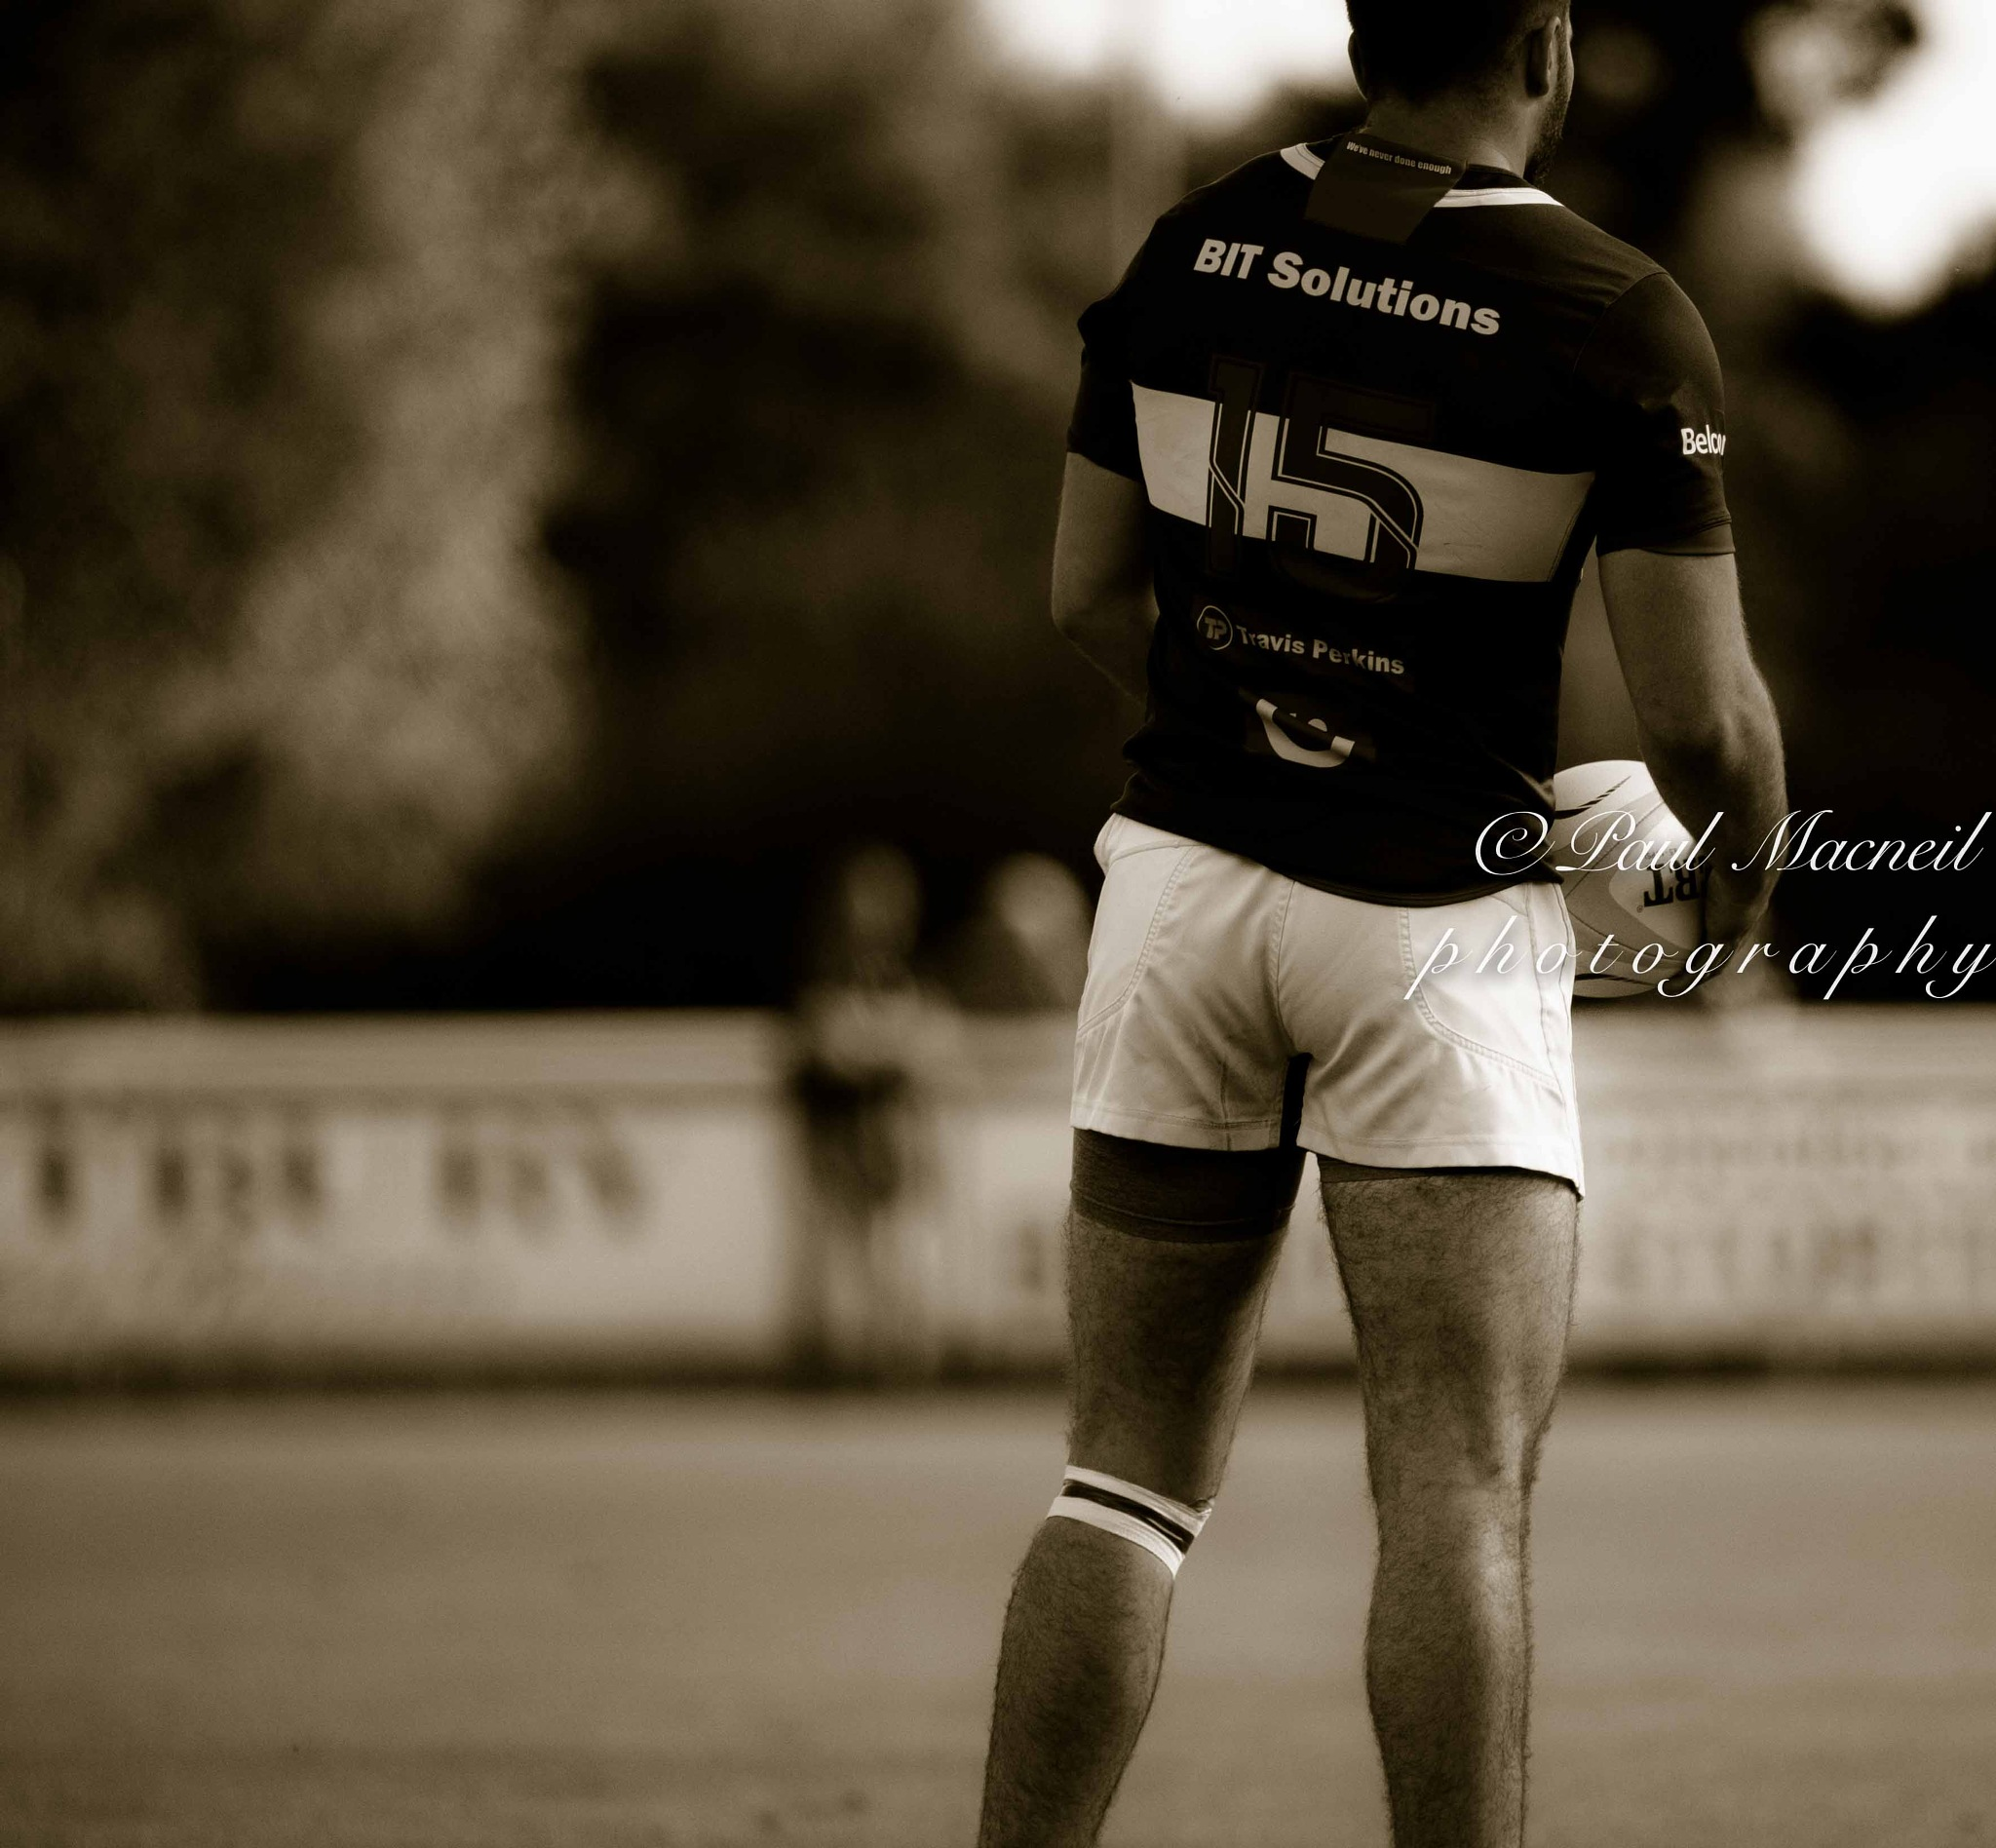 50 shades of rugby by Paulomac